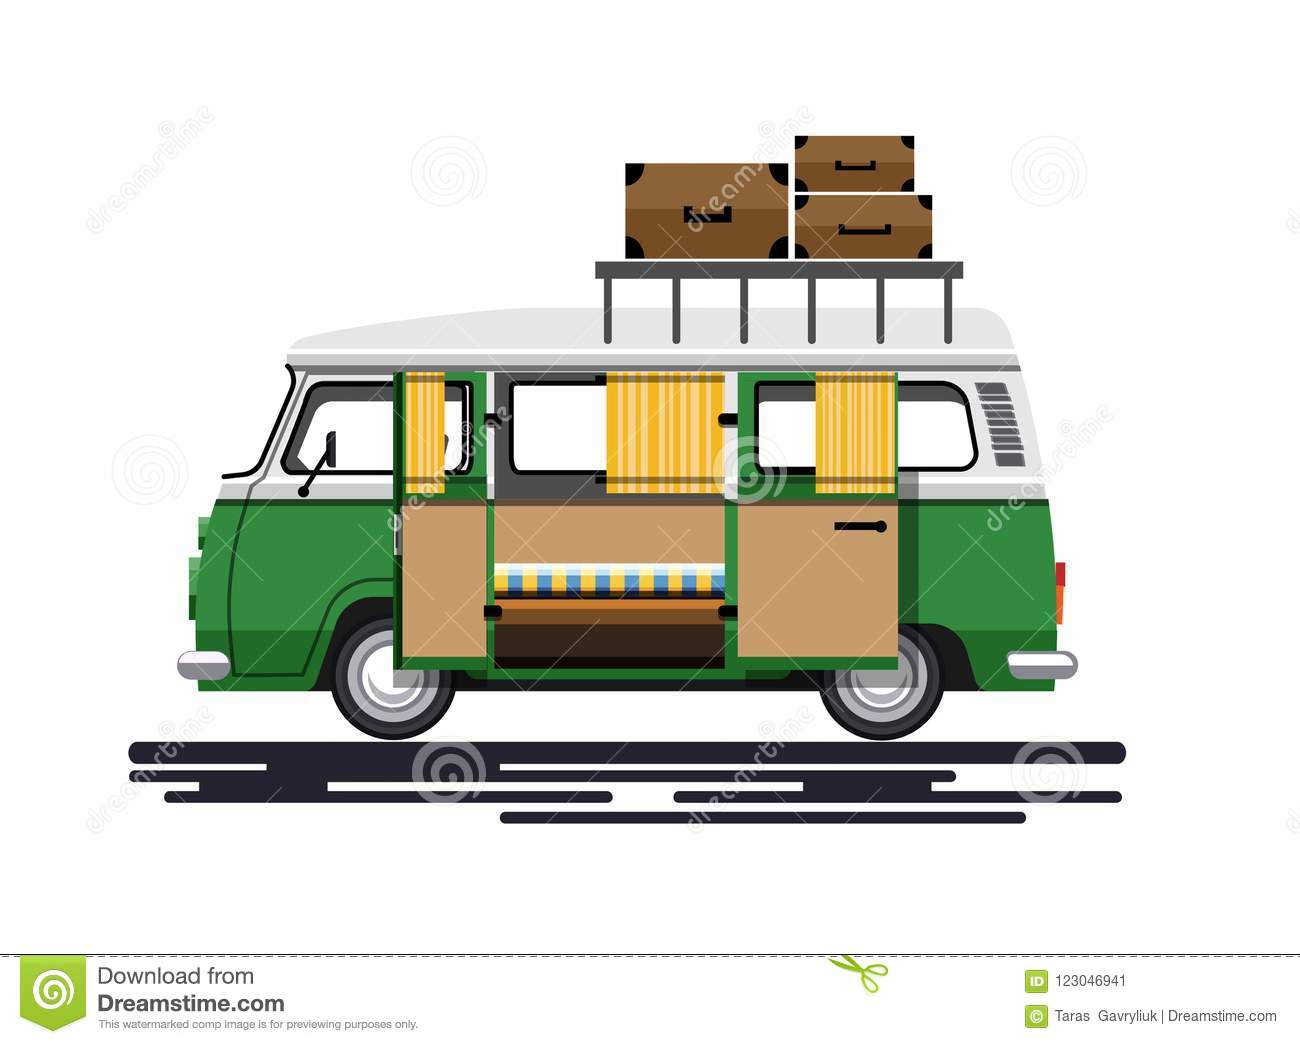 A Car For Traveling With Luggage Stock Vector - Illustration of